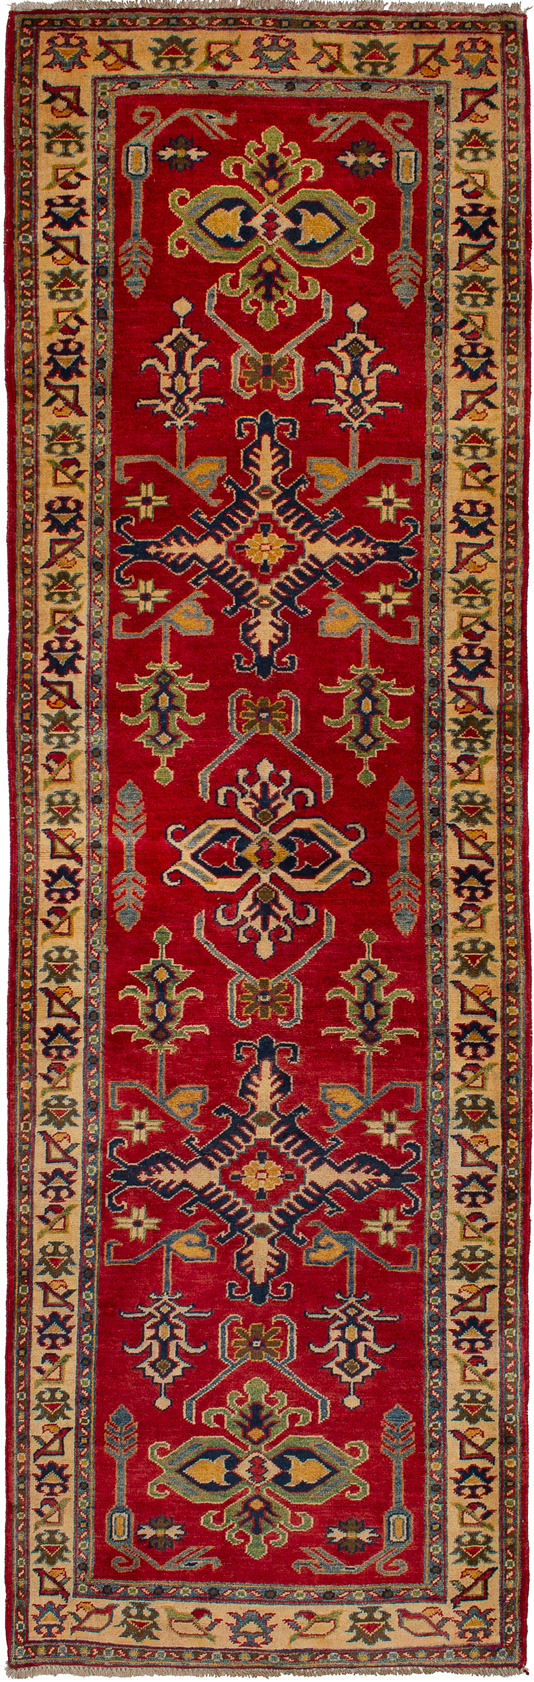 "Hand-knotted Finest Gazni Red Wool Rug 2'10"" x 9'3""  Size: 2'10"" x 9'3"""